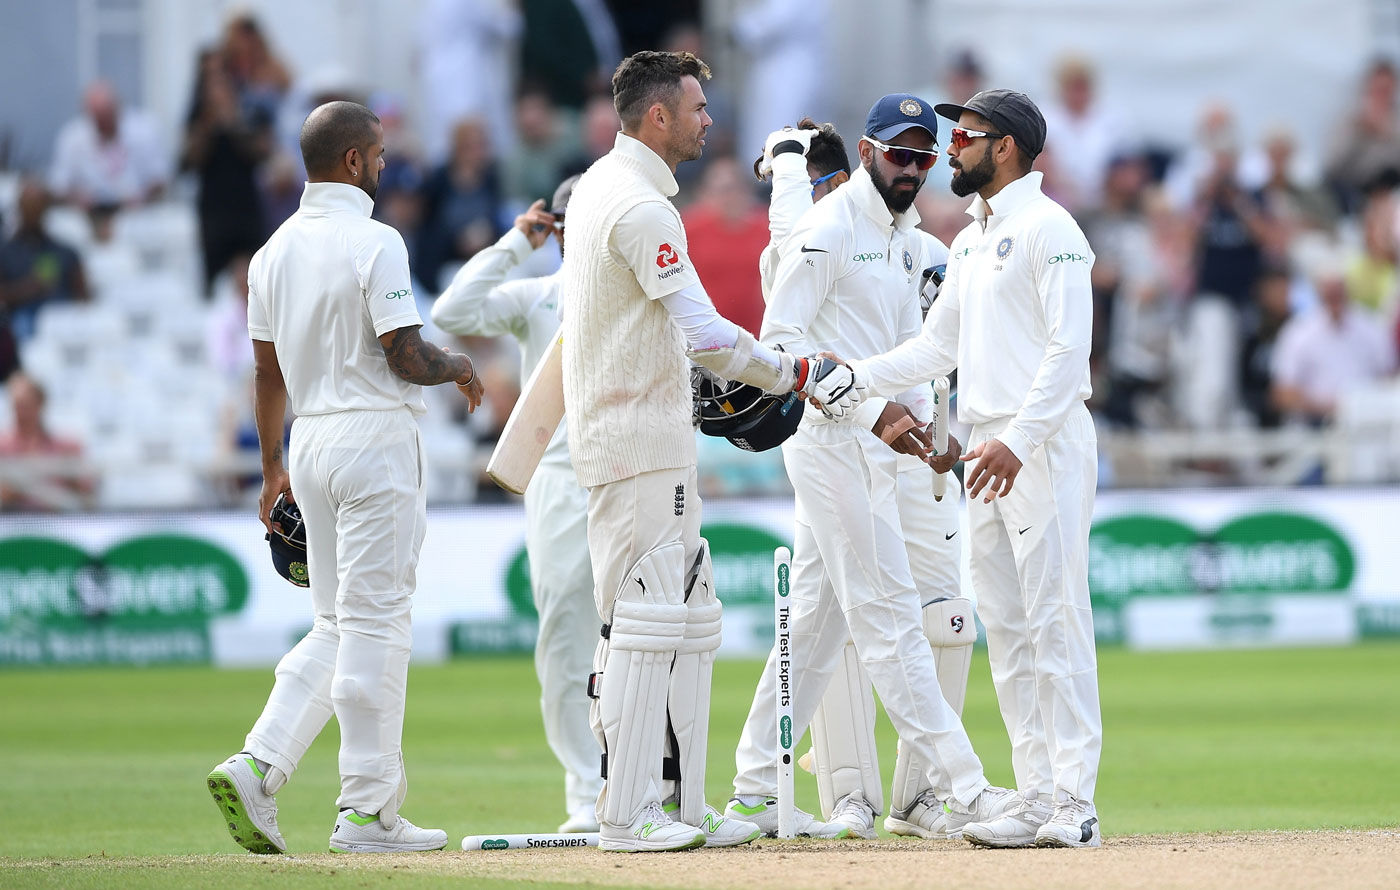 ENG vs IND 2018: I Do Not See India Winning The Series: Nick Compton